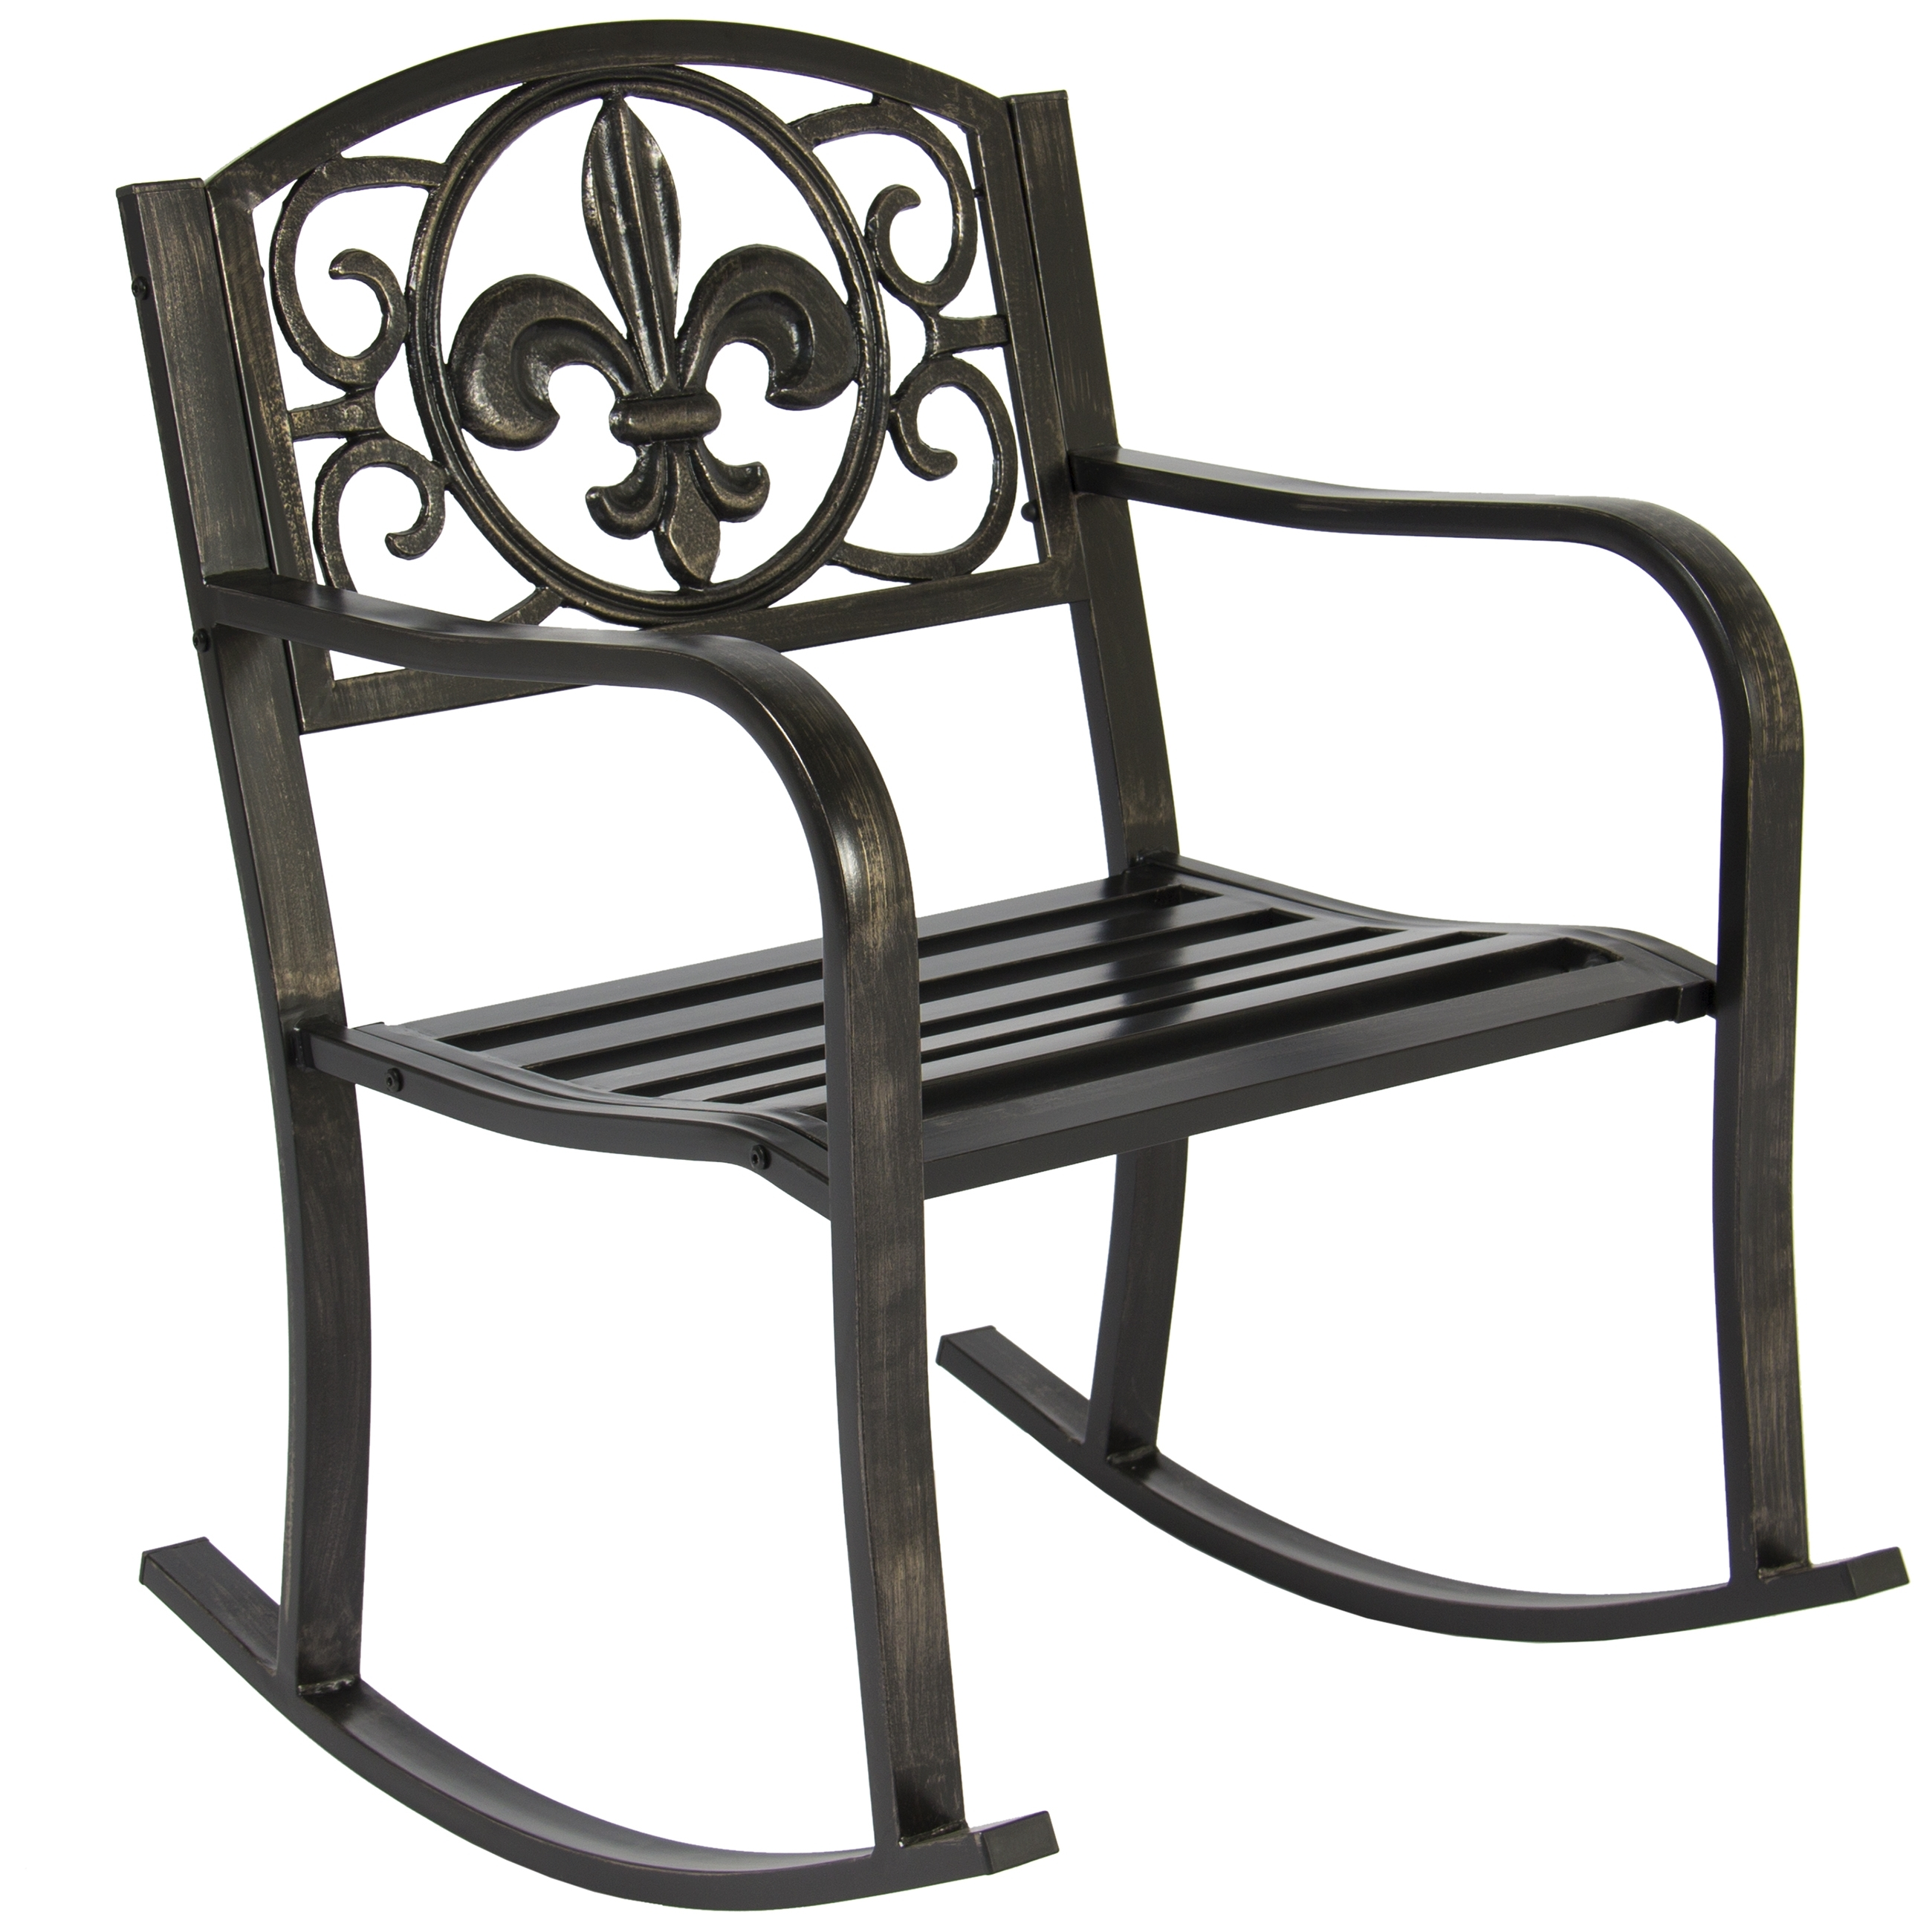 Best Choice Products Metal Rocking Chair Seat For Patio, Porch, Deck Regarding Outdoor Patio Metal Rocking Chairs (#2 of 15)